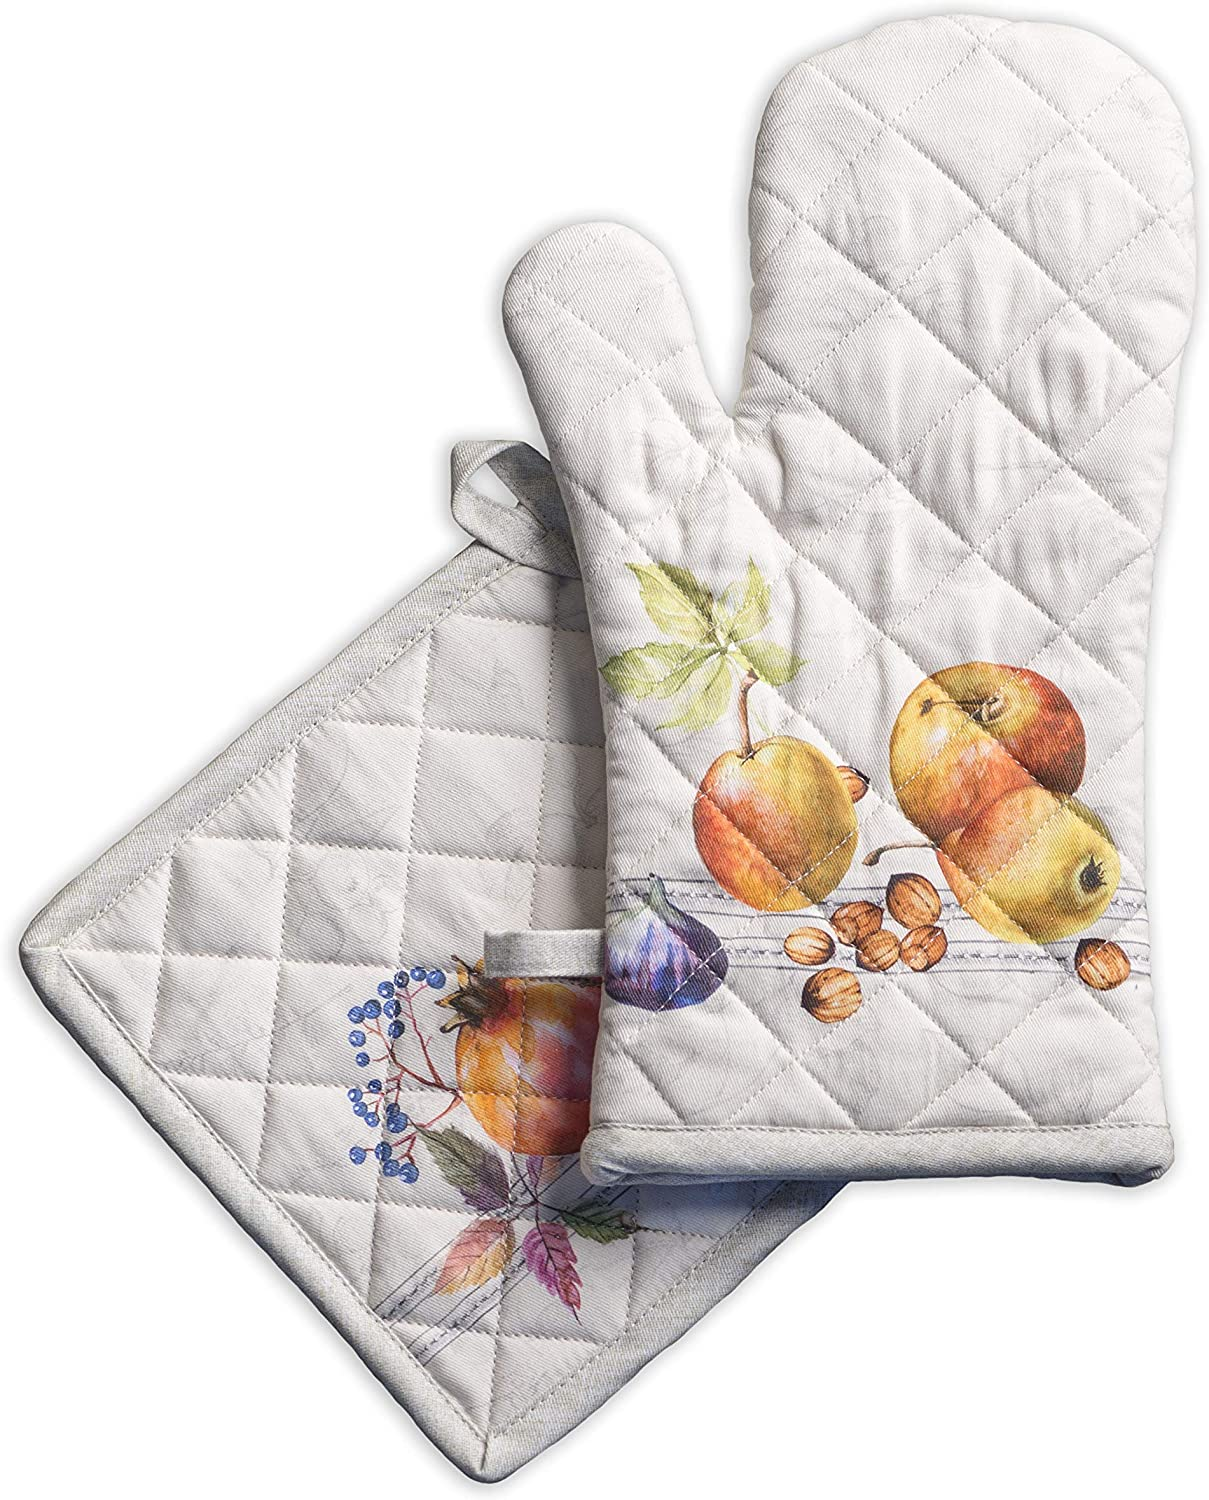 Maison d'Hermine Fruit d'hiver 100% Cotton Set of Oven Mitt (7.5 Inch by 13 Inch) and Pot Holder (8 Inch by 8 Inch). Perfect for Thanksgiving and Christmas